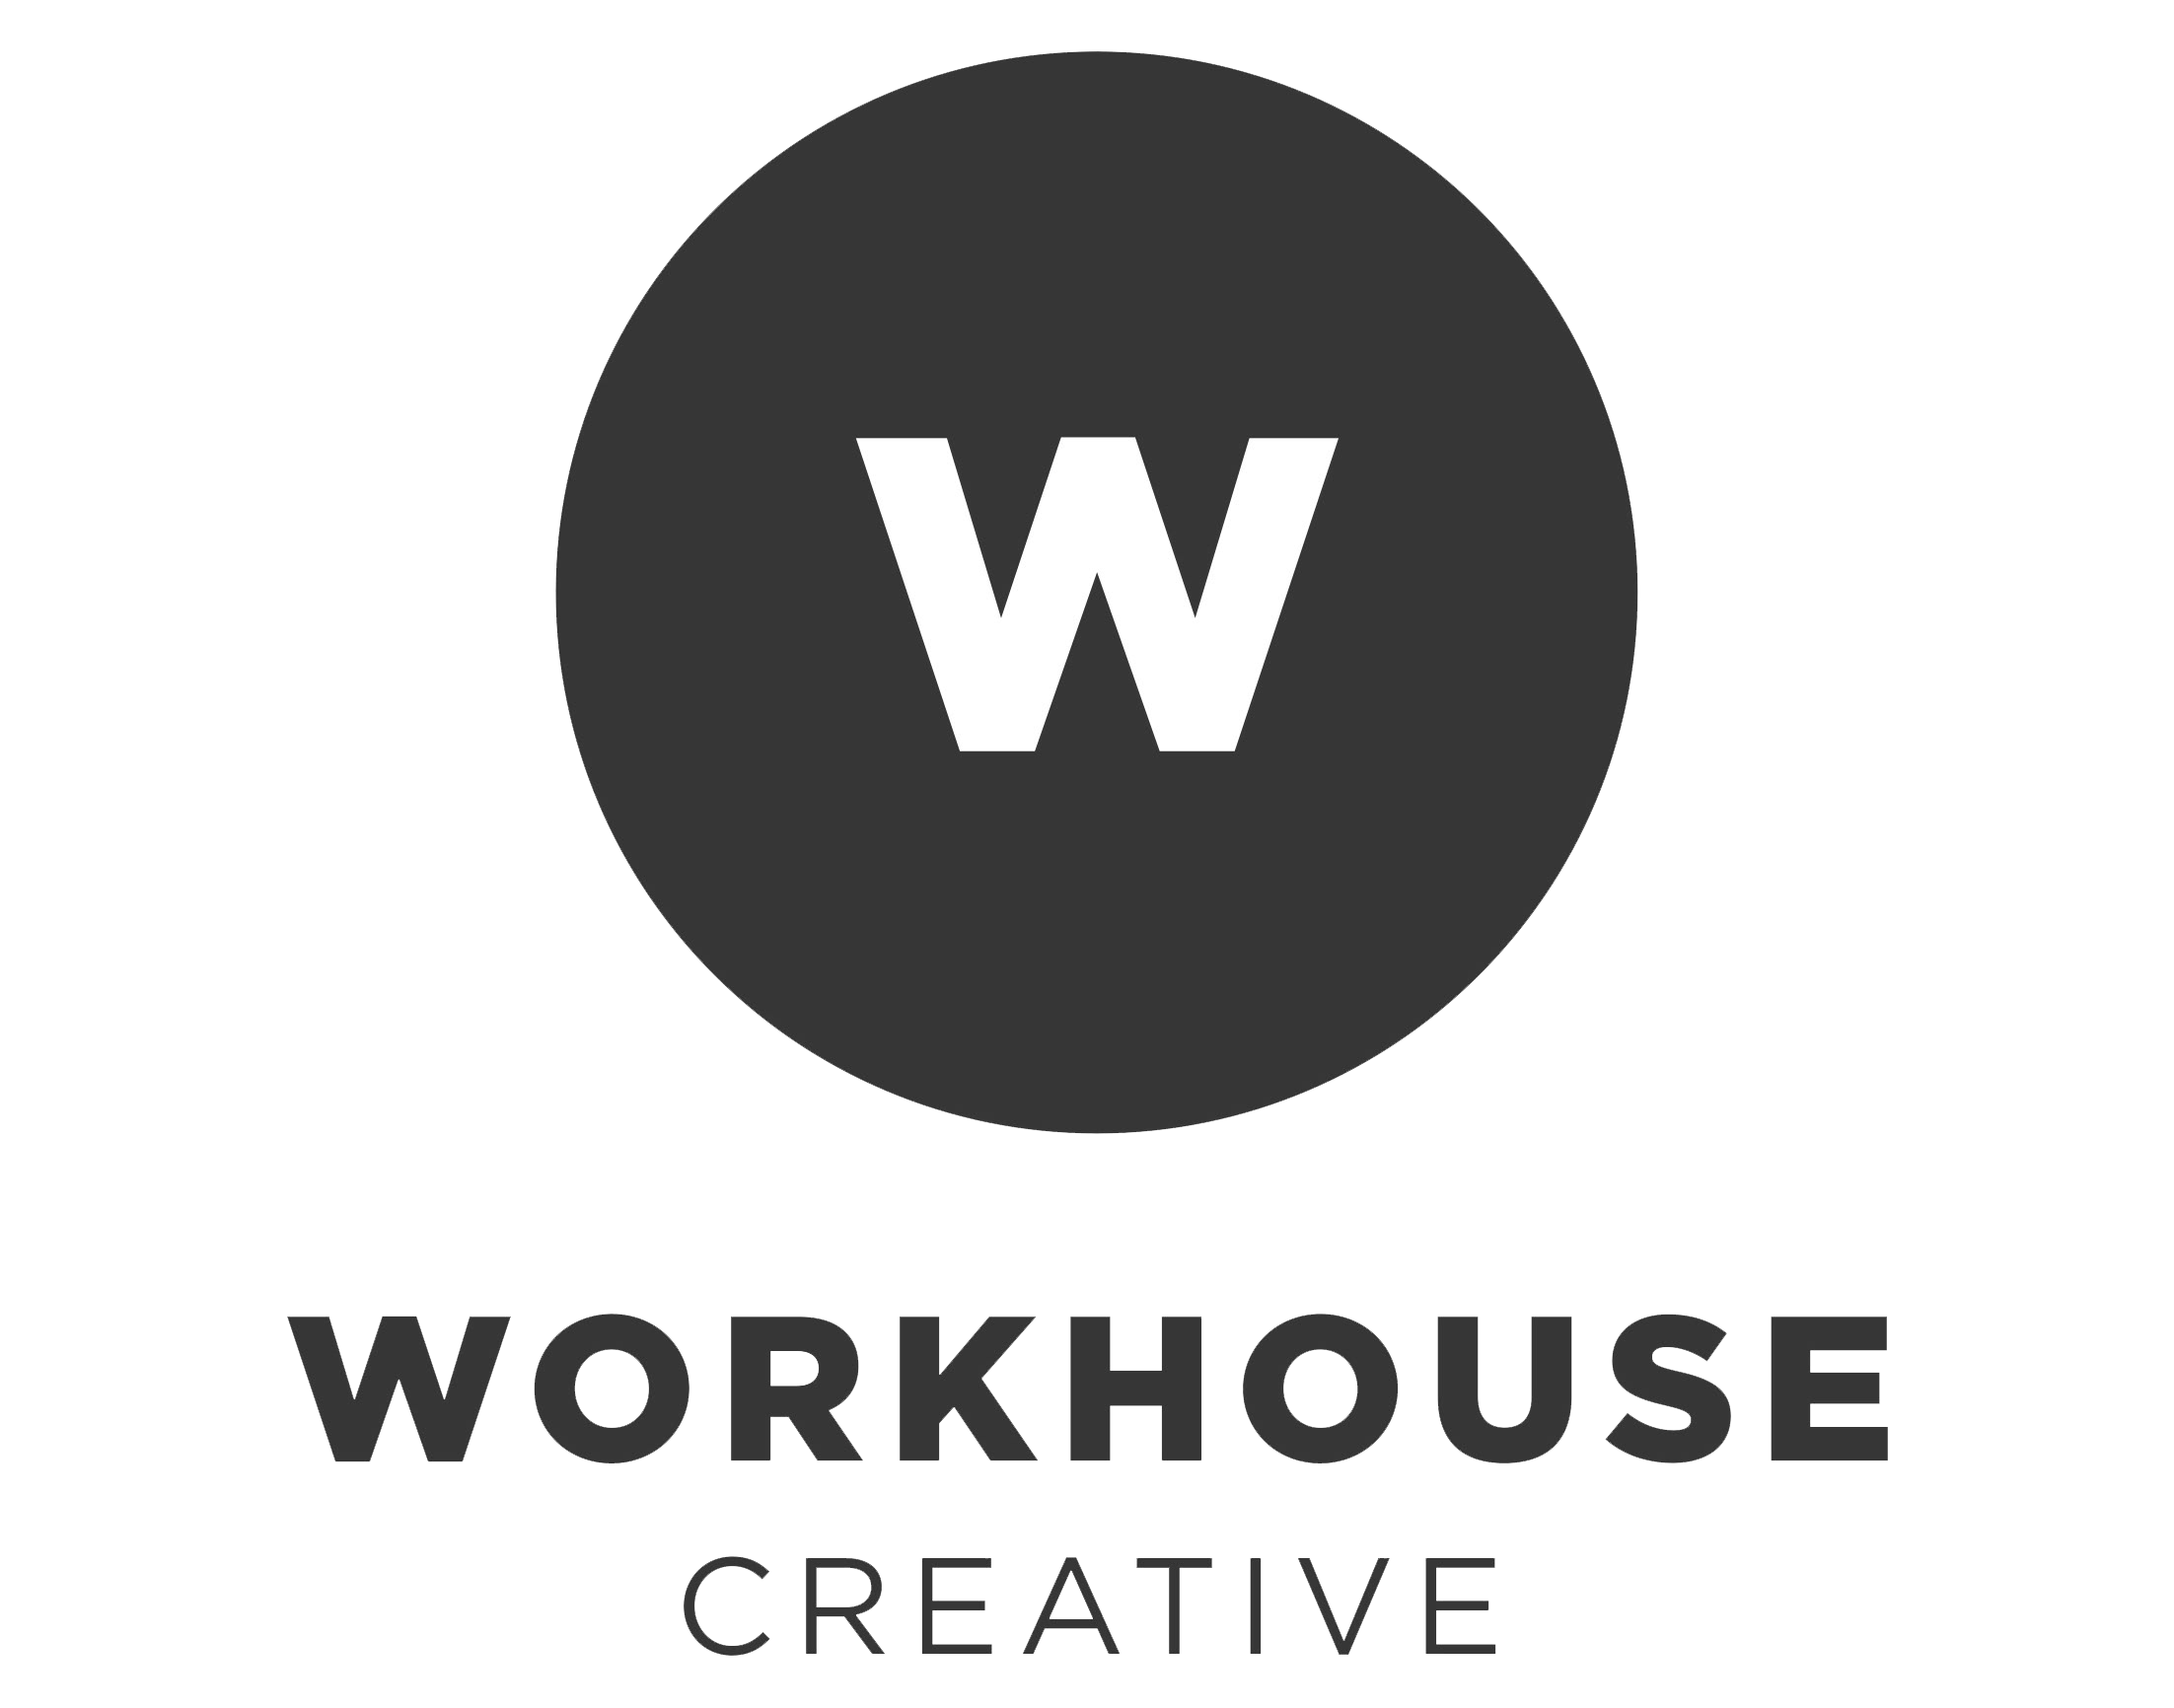 workhouse-creative-transparent.png